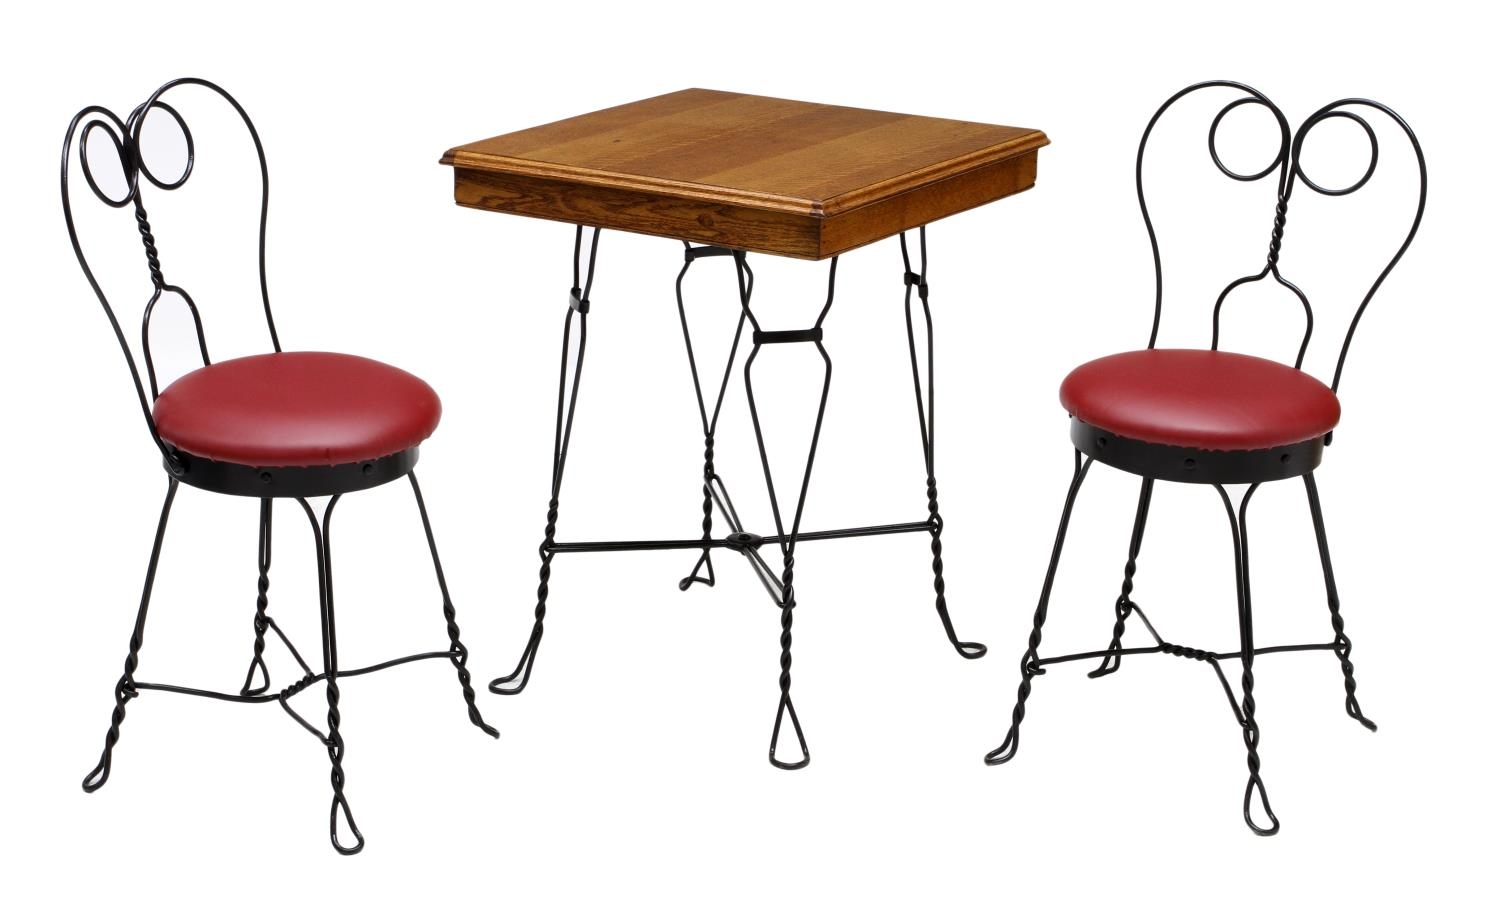 Ice Cream Table And Chairs 3 American Ice Cream Parlor Table And Chairs February